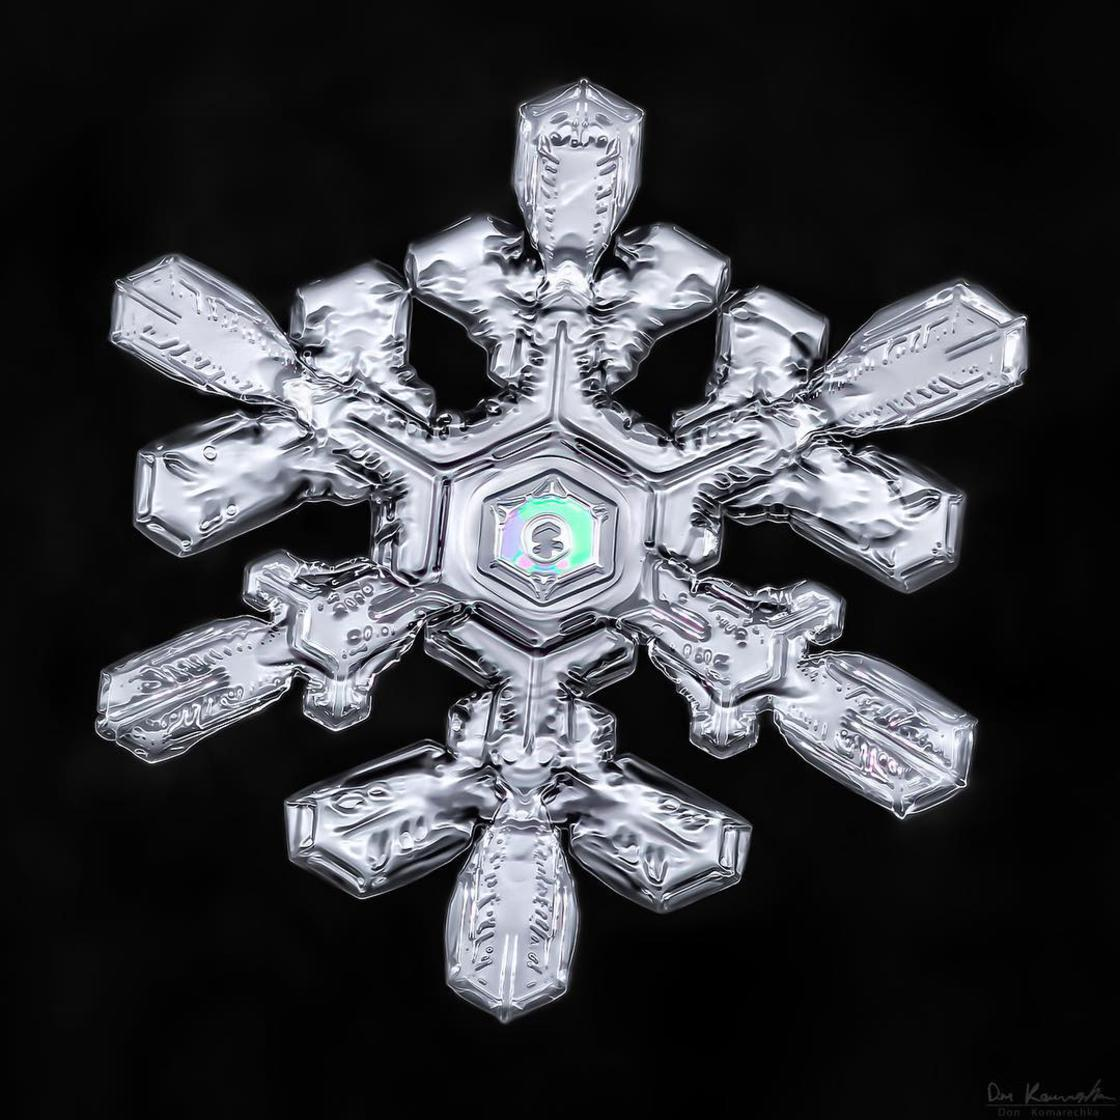 Sky Crystals – The fascinating beauty of snowflakes